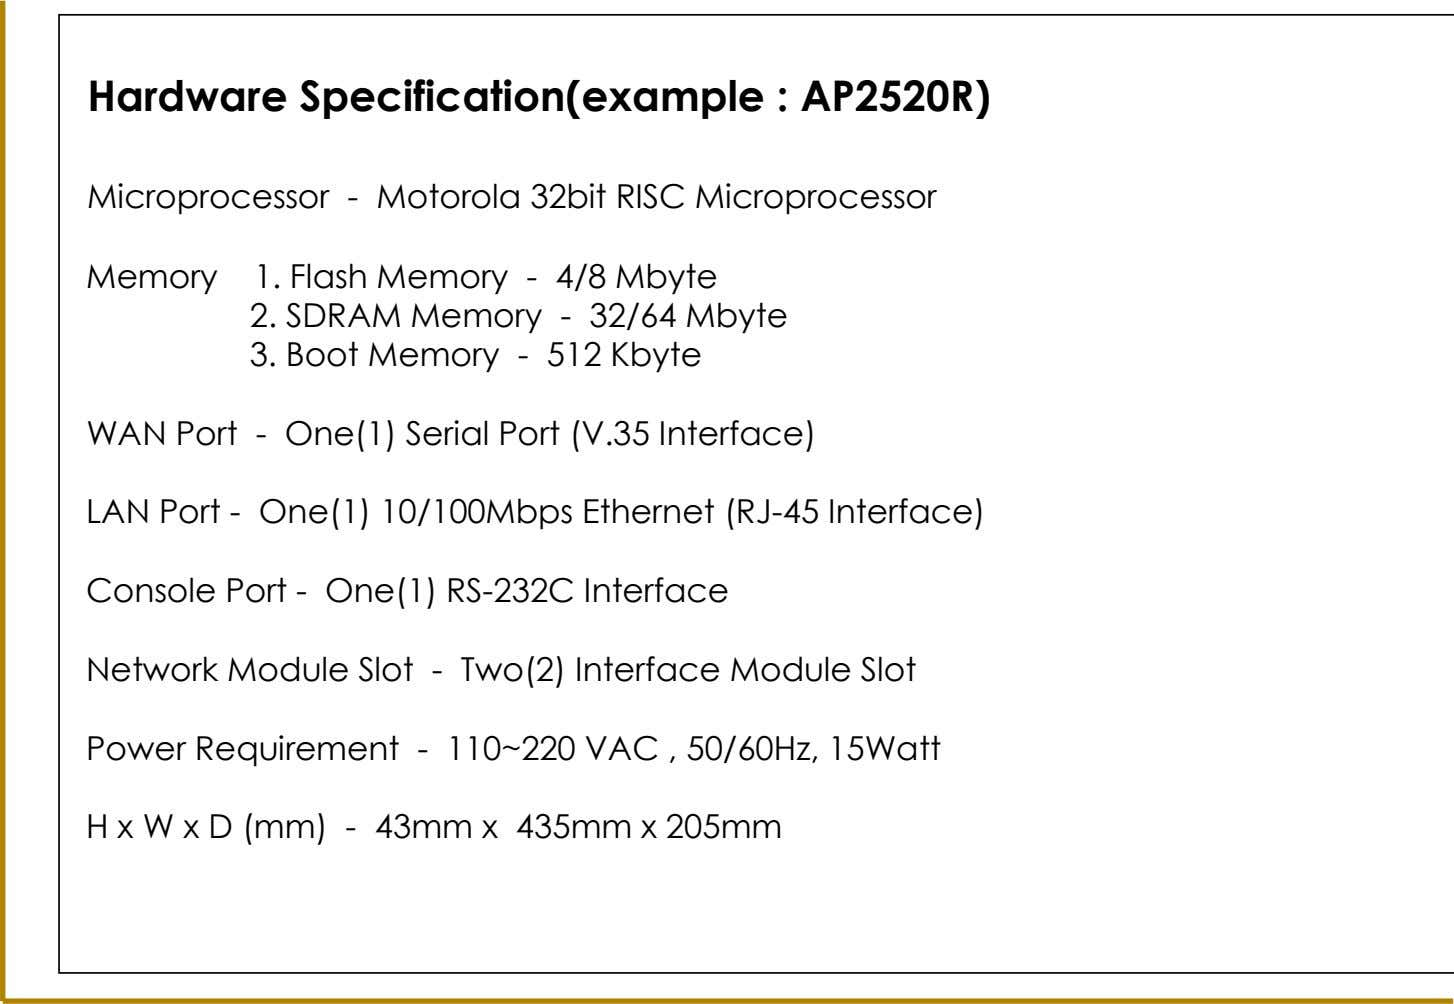 1. AddPac VoIP Gateway(1/3) Hardware Specification(example : AP2520R) Microprocessor - Motorola 32bit RISC